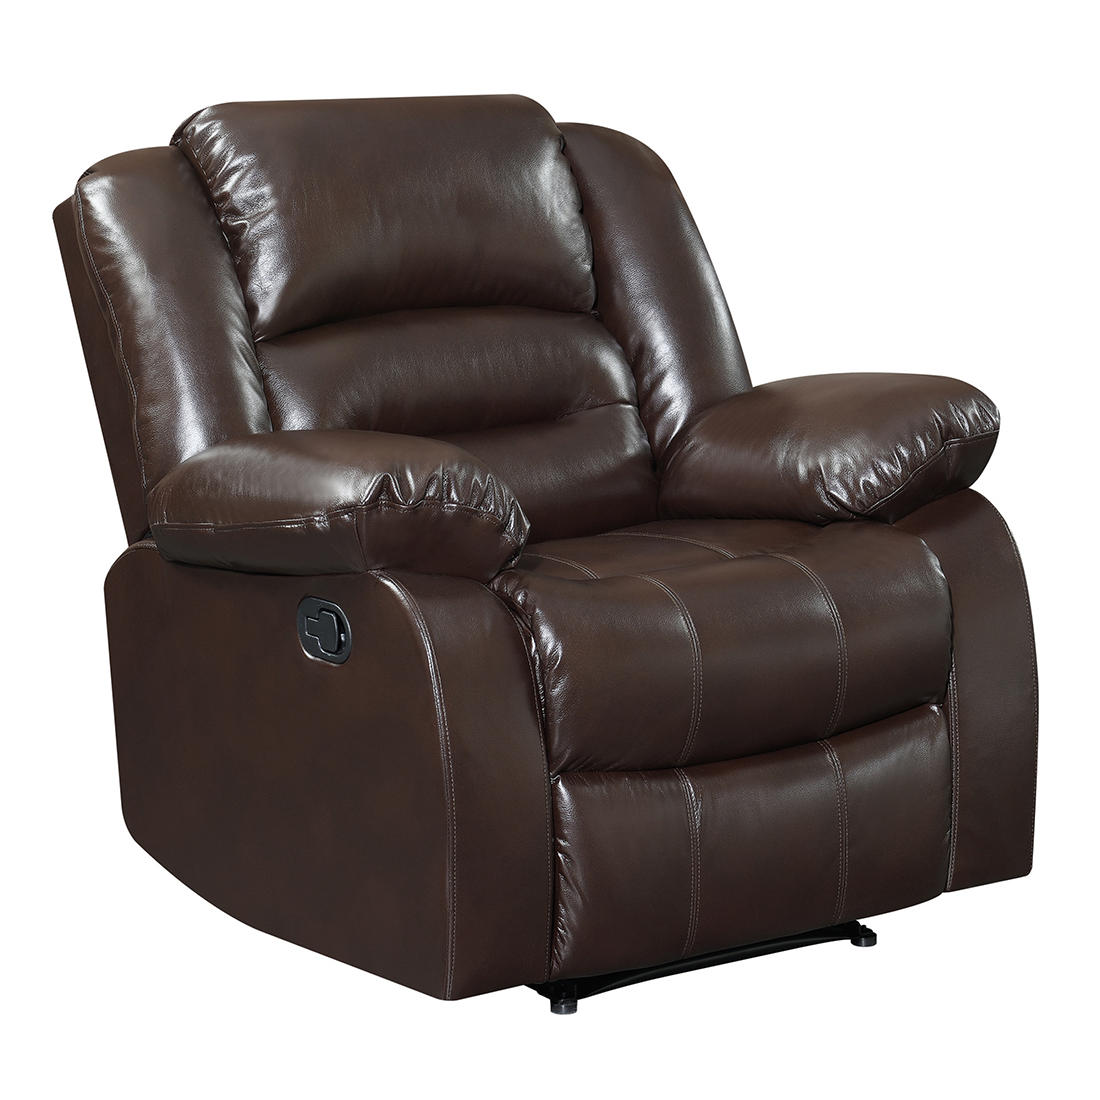 Elements Perth Big Bubba Faux Leather Manual Motion Recliner